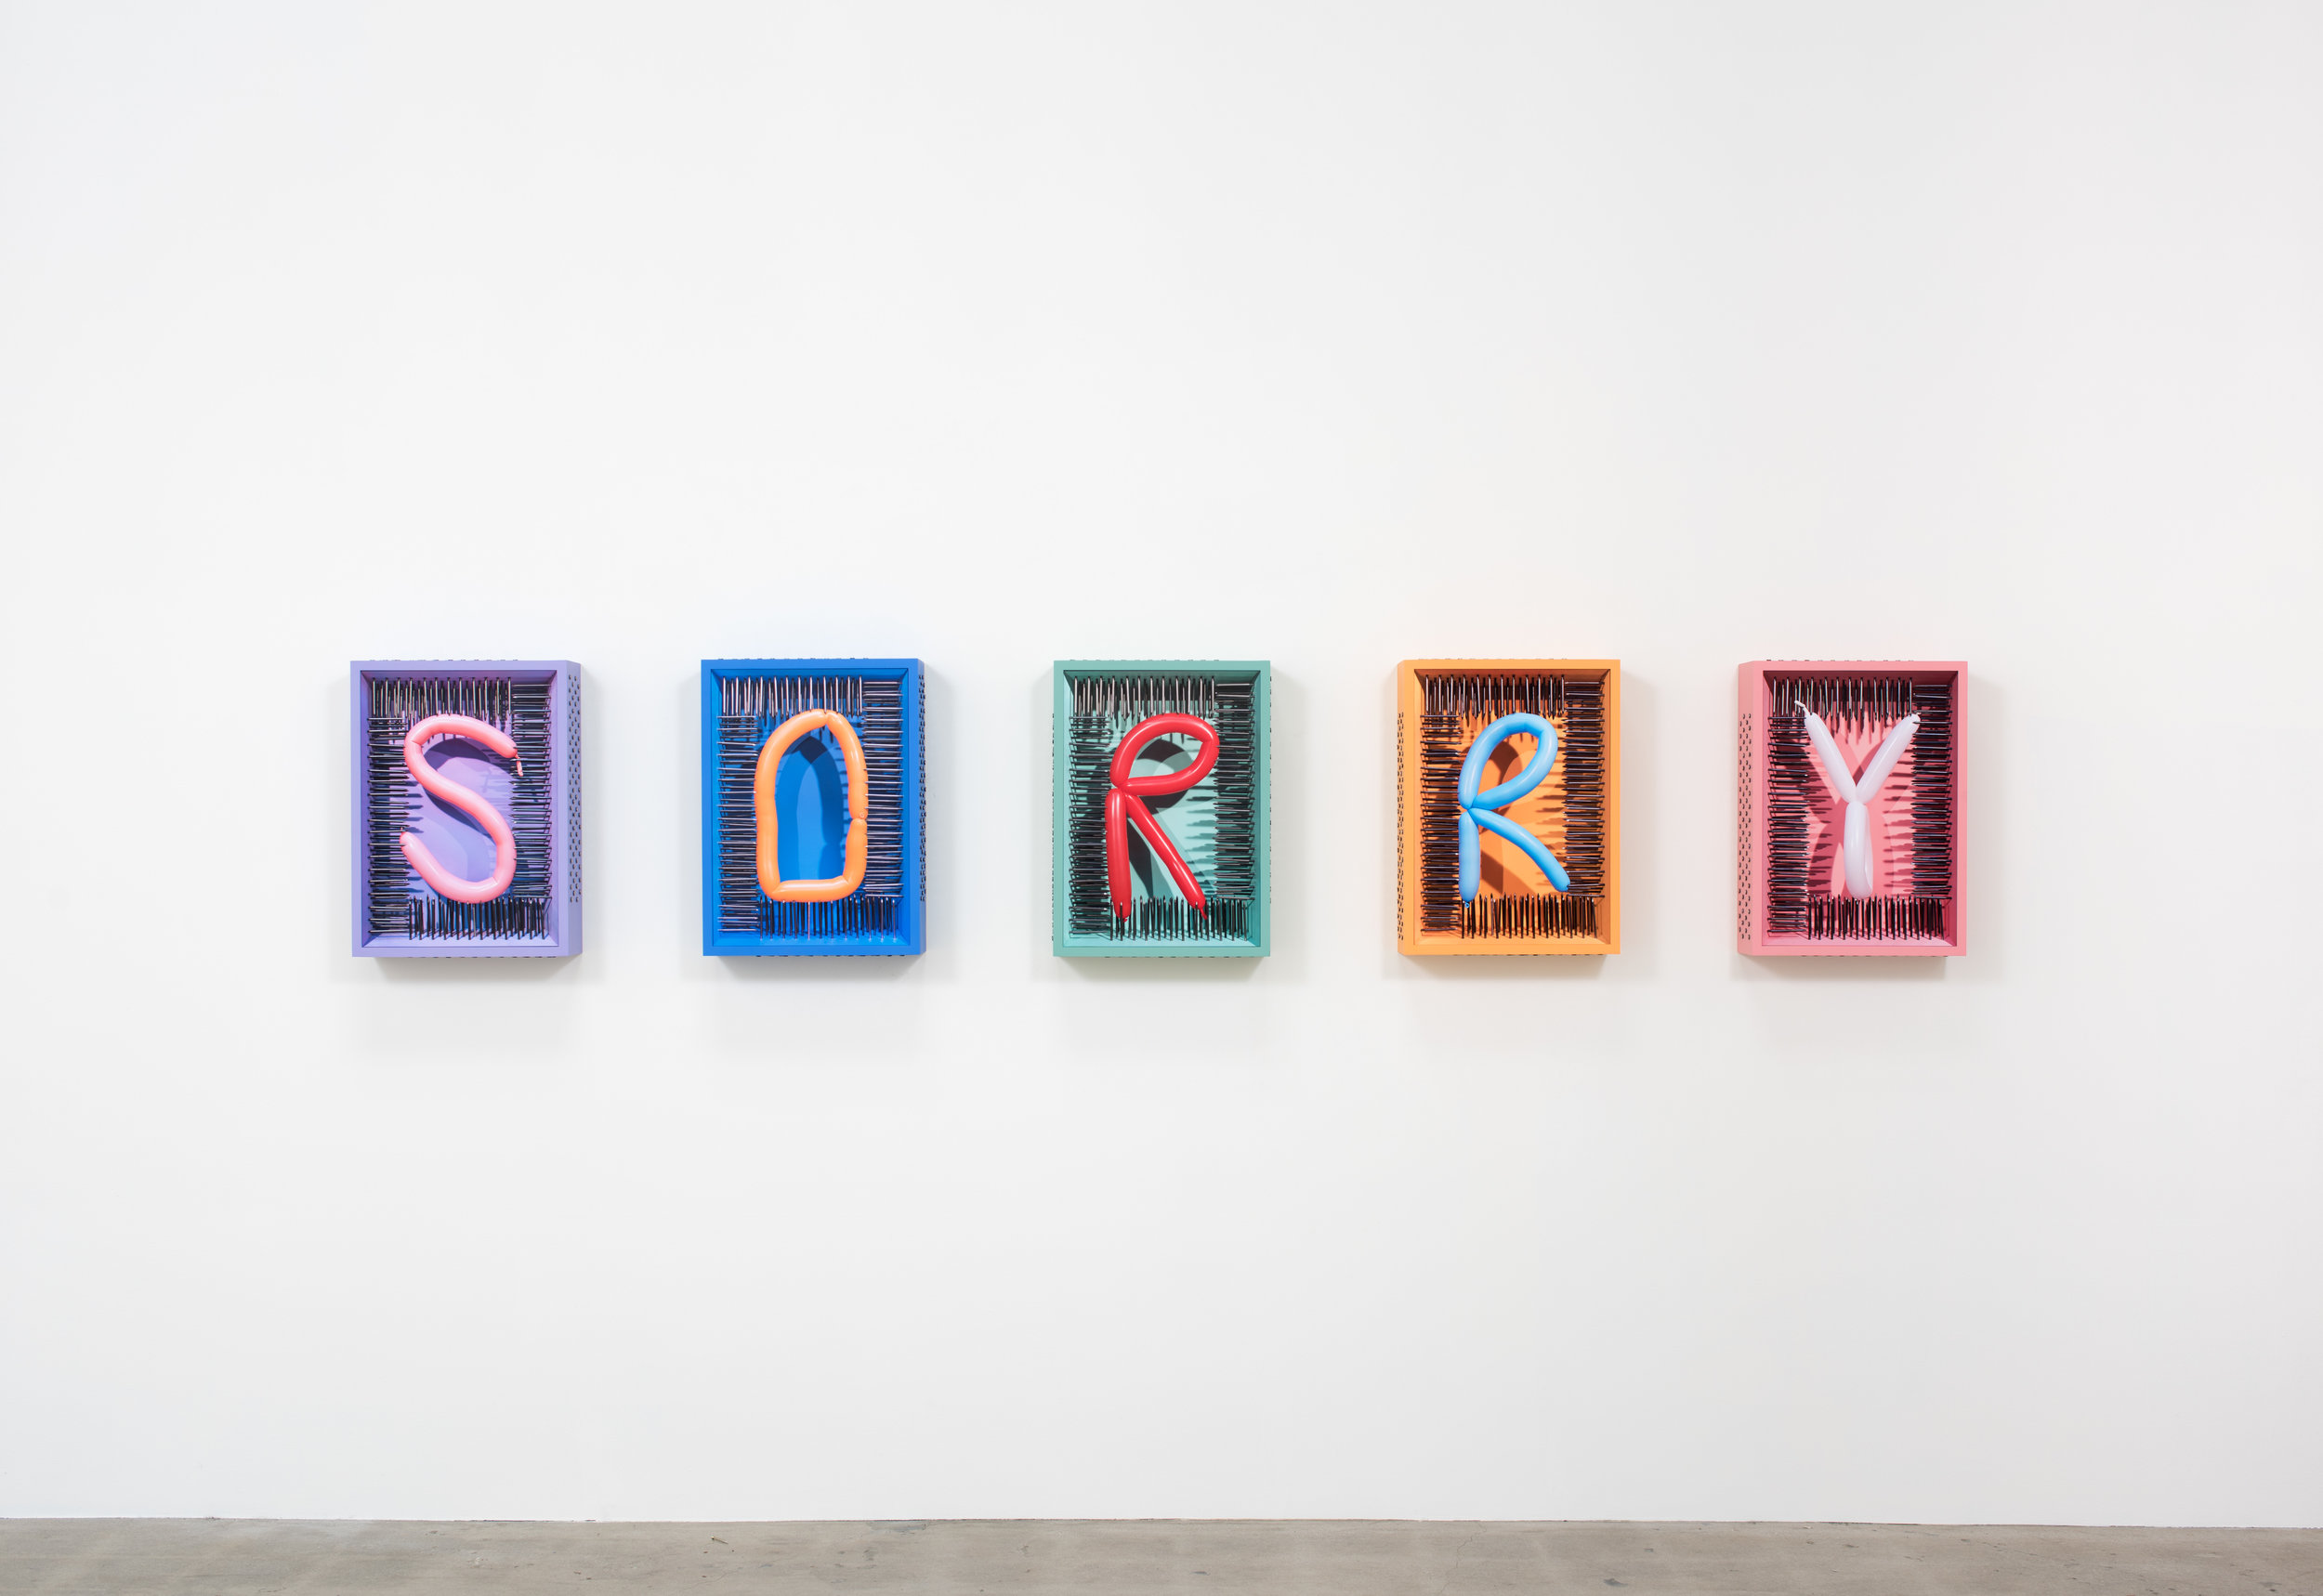 The Last Apology , 2019 Five archival pigment prints, wood, acrylic paint, and steel nails 22 1/2 x 16 1/2 x 5 1/2 inches   ————